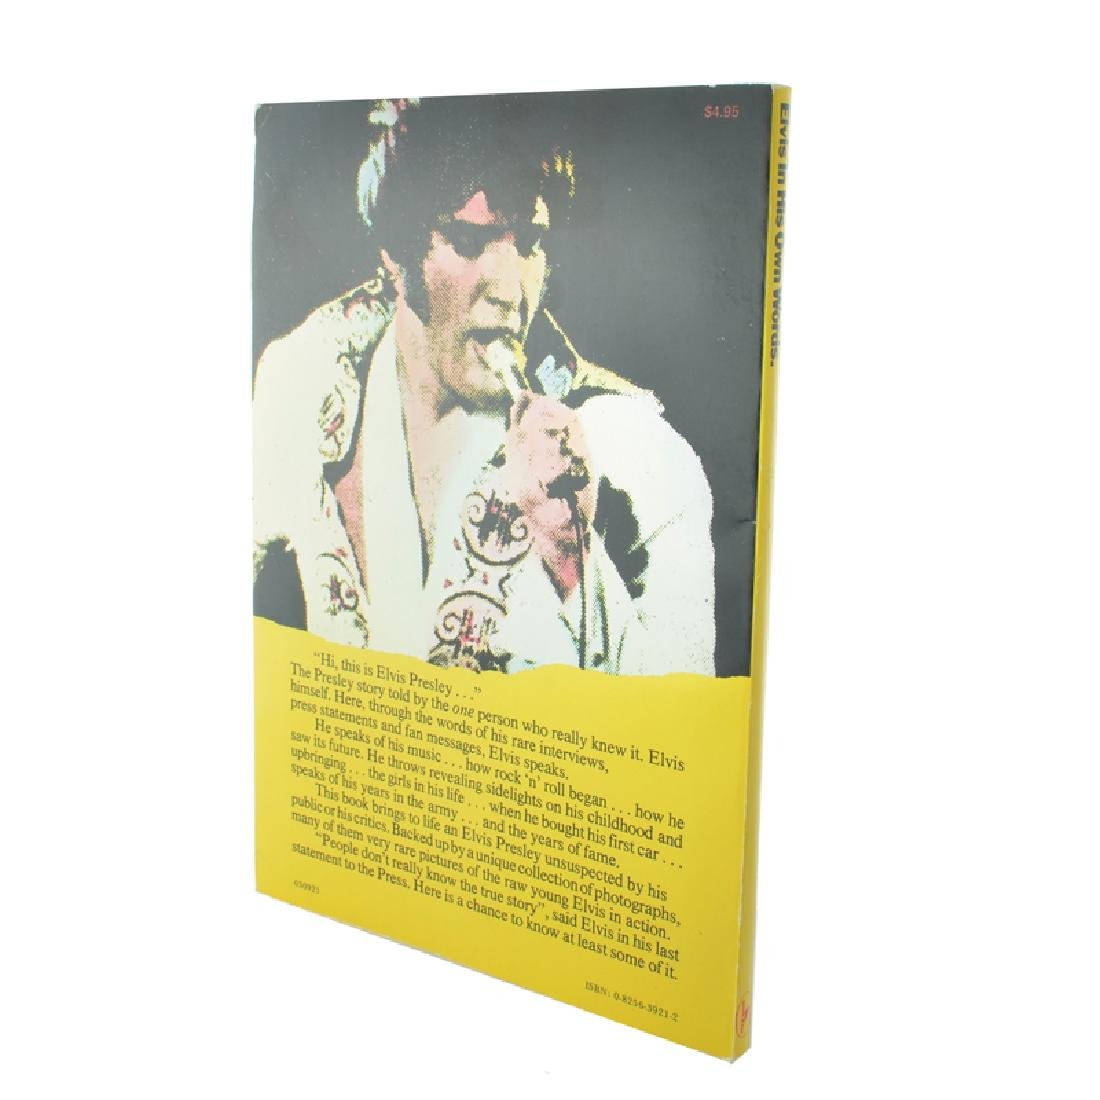 Elvis In His Own Words (Paperback) - 2